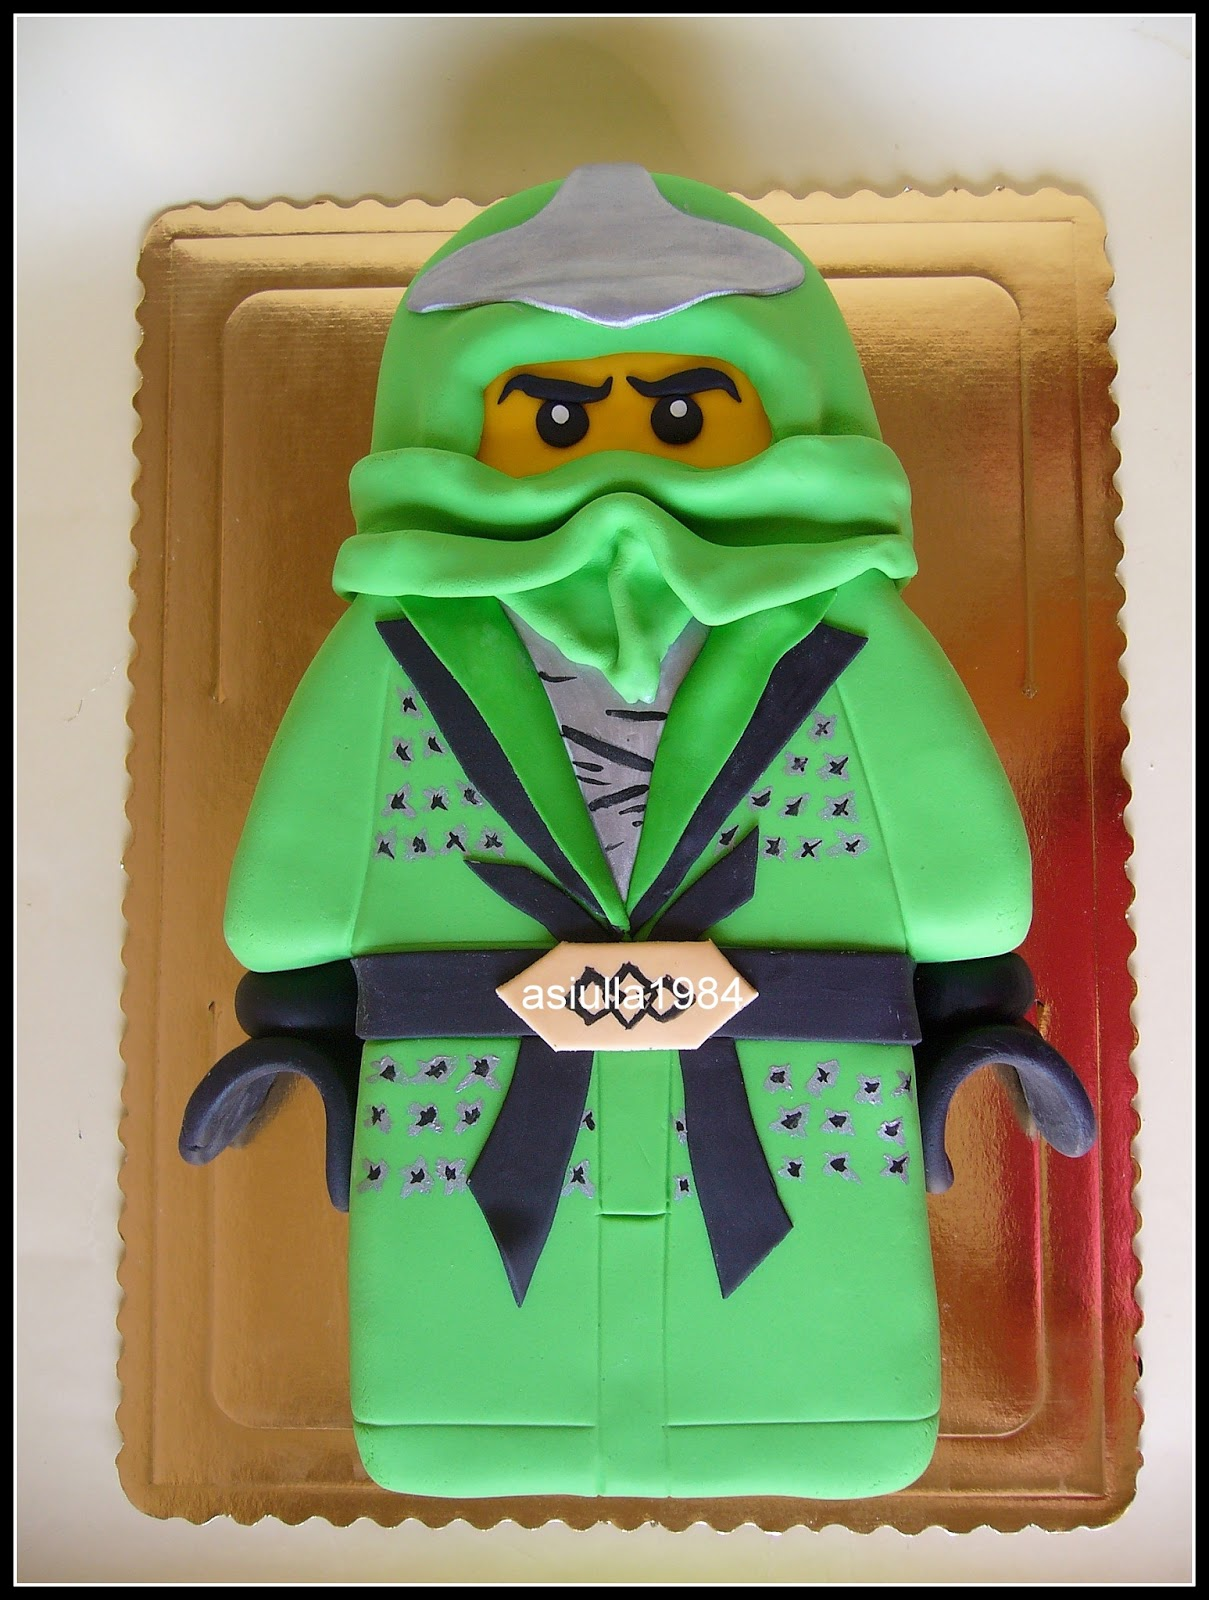 Lego ninjago tort all about loving each other